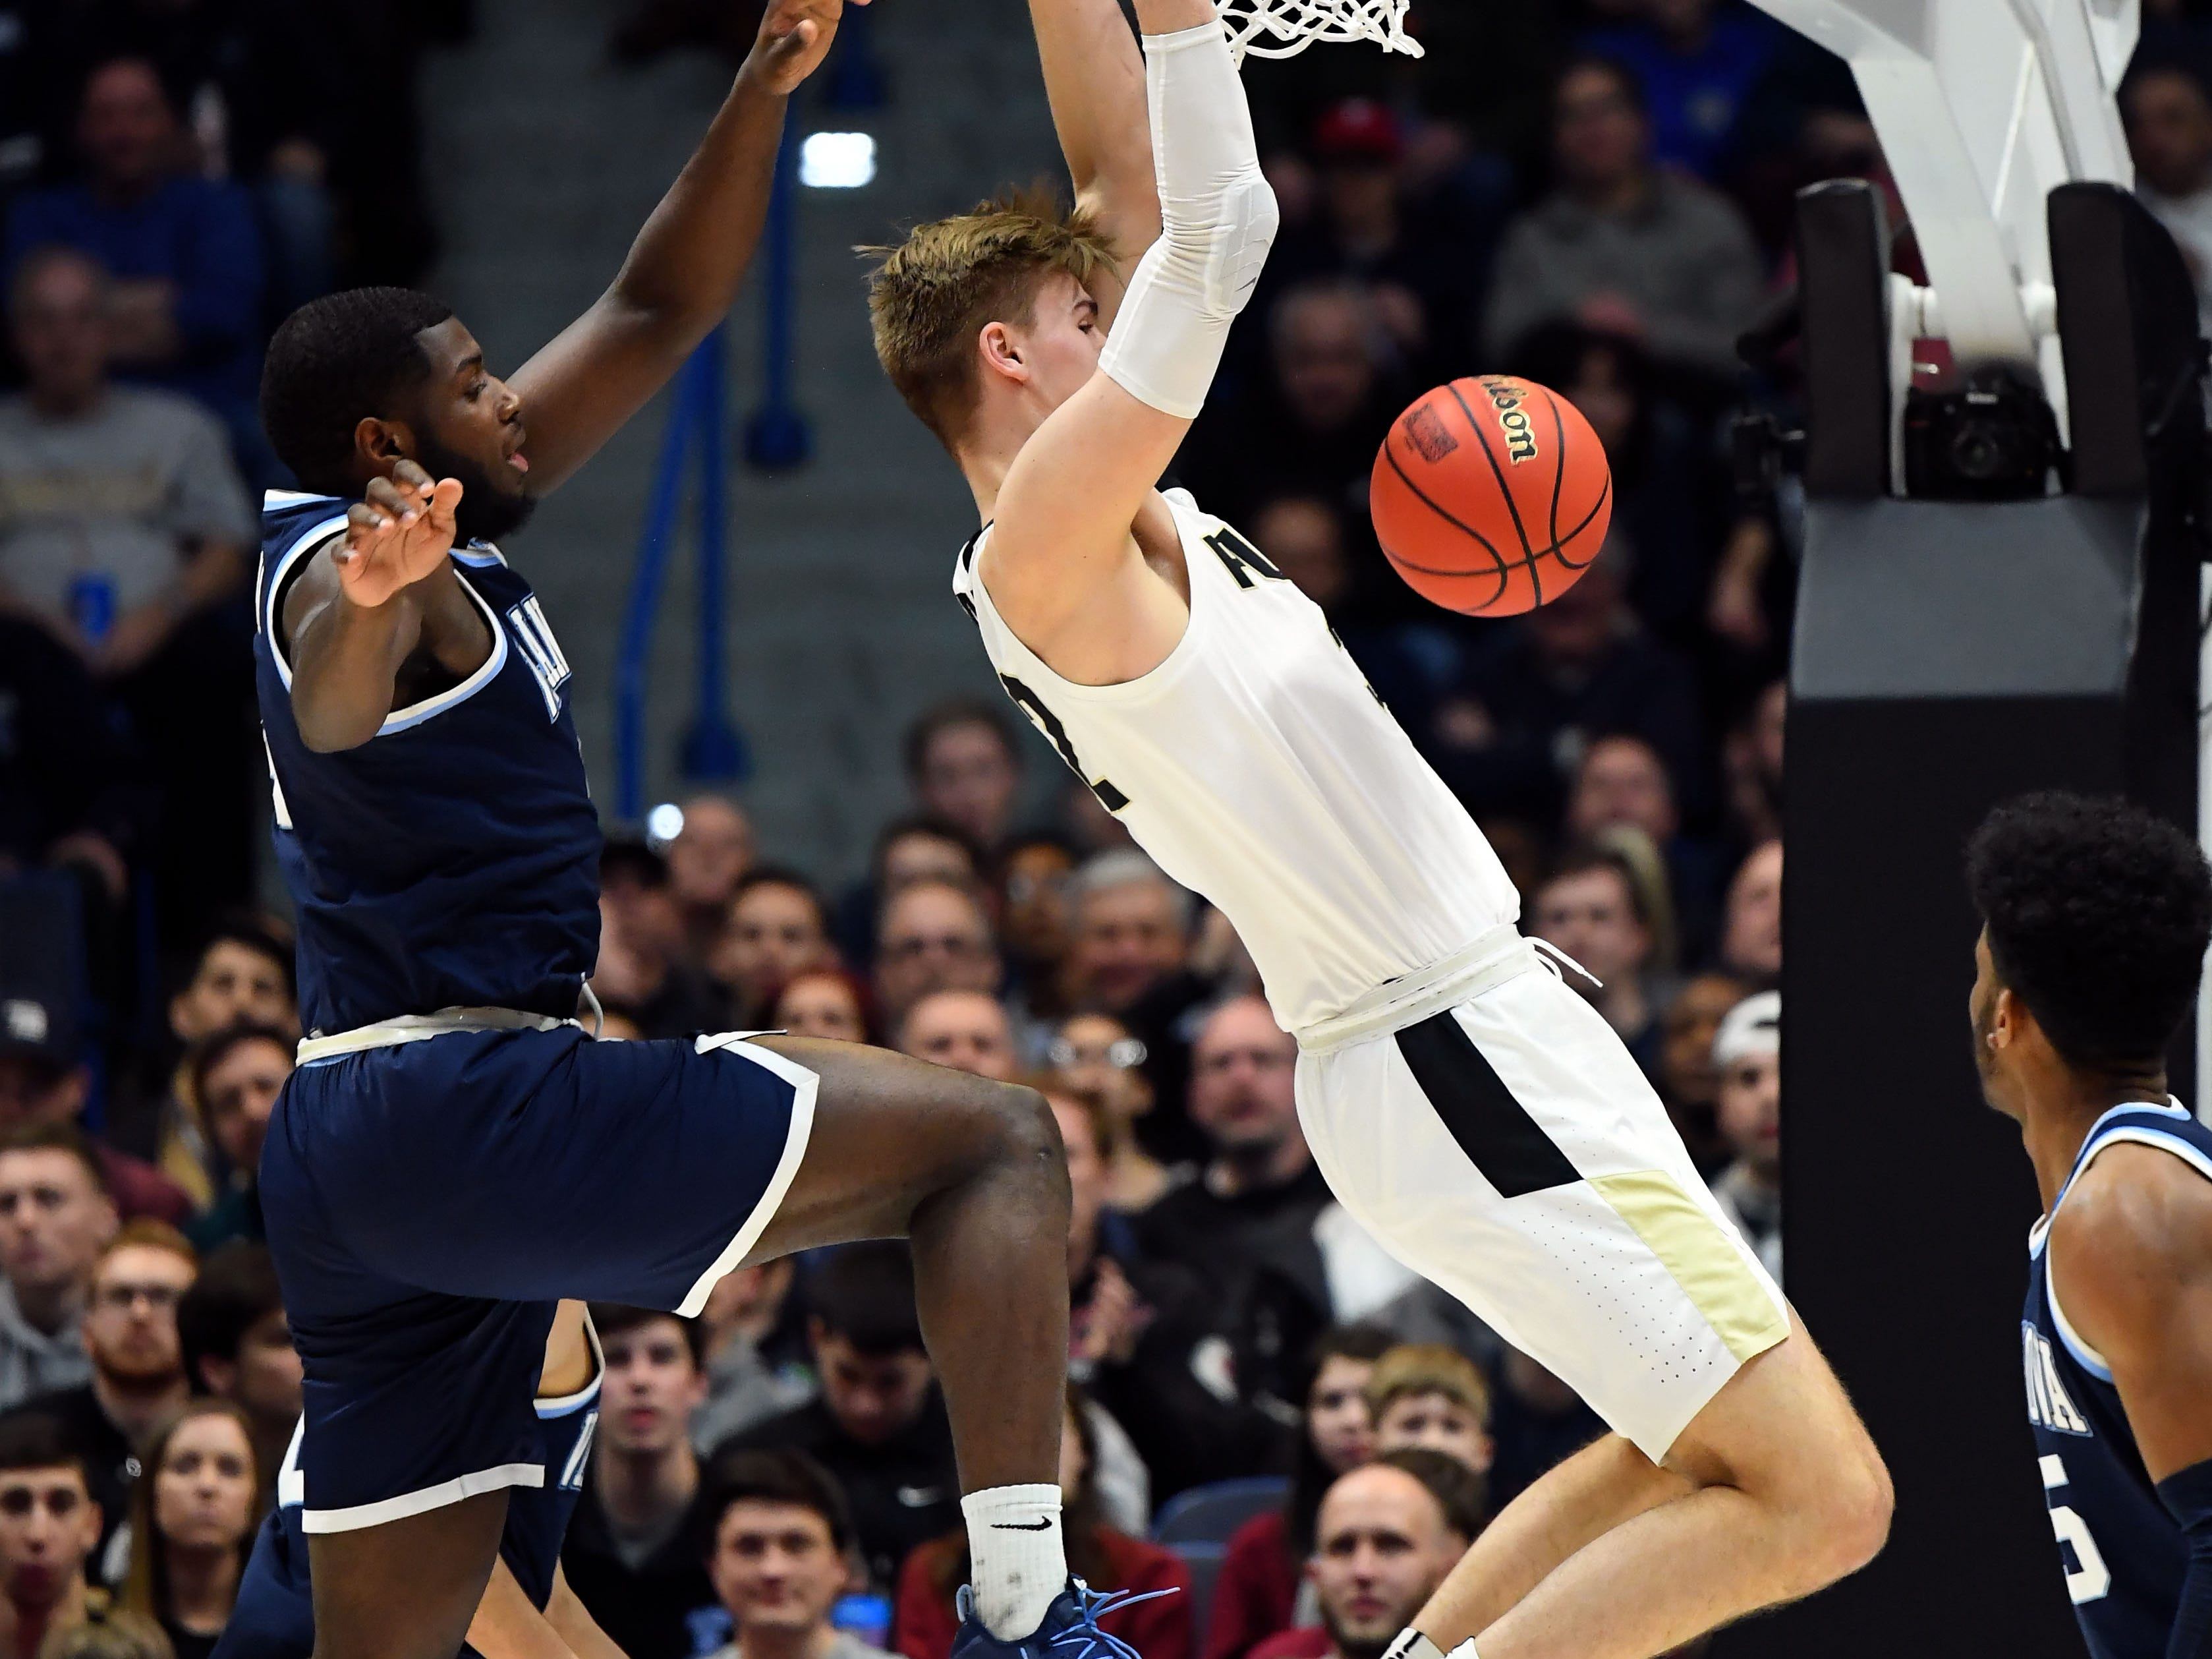 Mar 23, 2019; Hartford, CT, USA; Purdue Boilermakers center Matt Haarms (32) dunks and scores against the Villanova Wildcats during the first half of game in the second round of the 2019 NCAA Tournament at XL Center. Mandatory Credit: Robert Deutsch-USA TODAY Sports